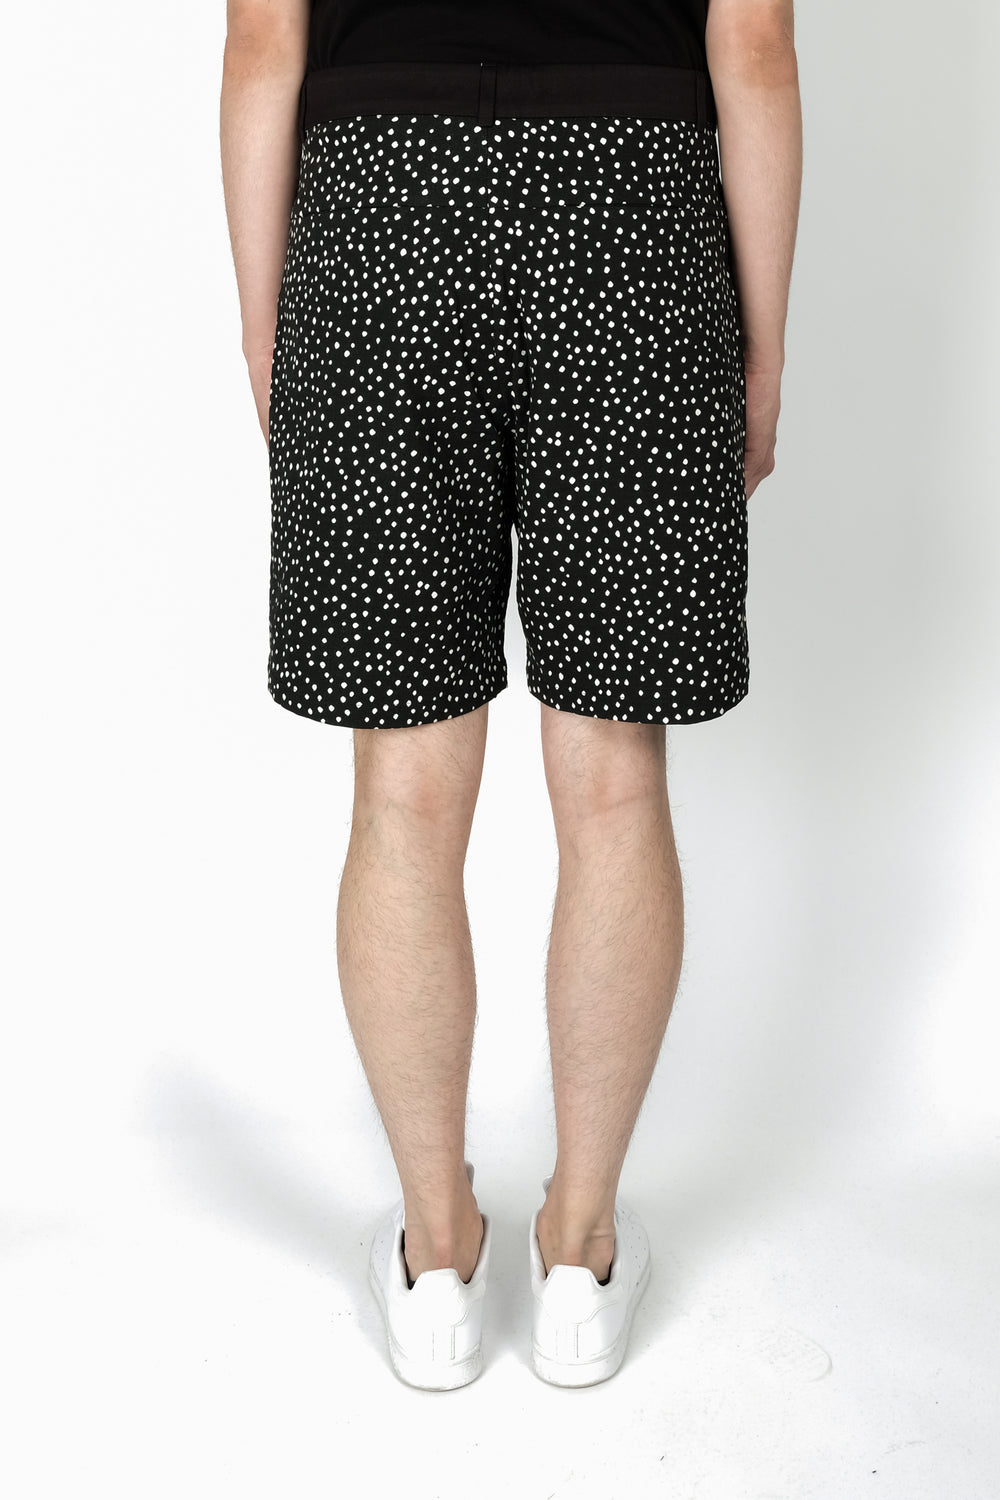 Les Benjamins Gunyidi Shorts In Black